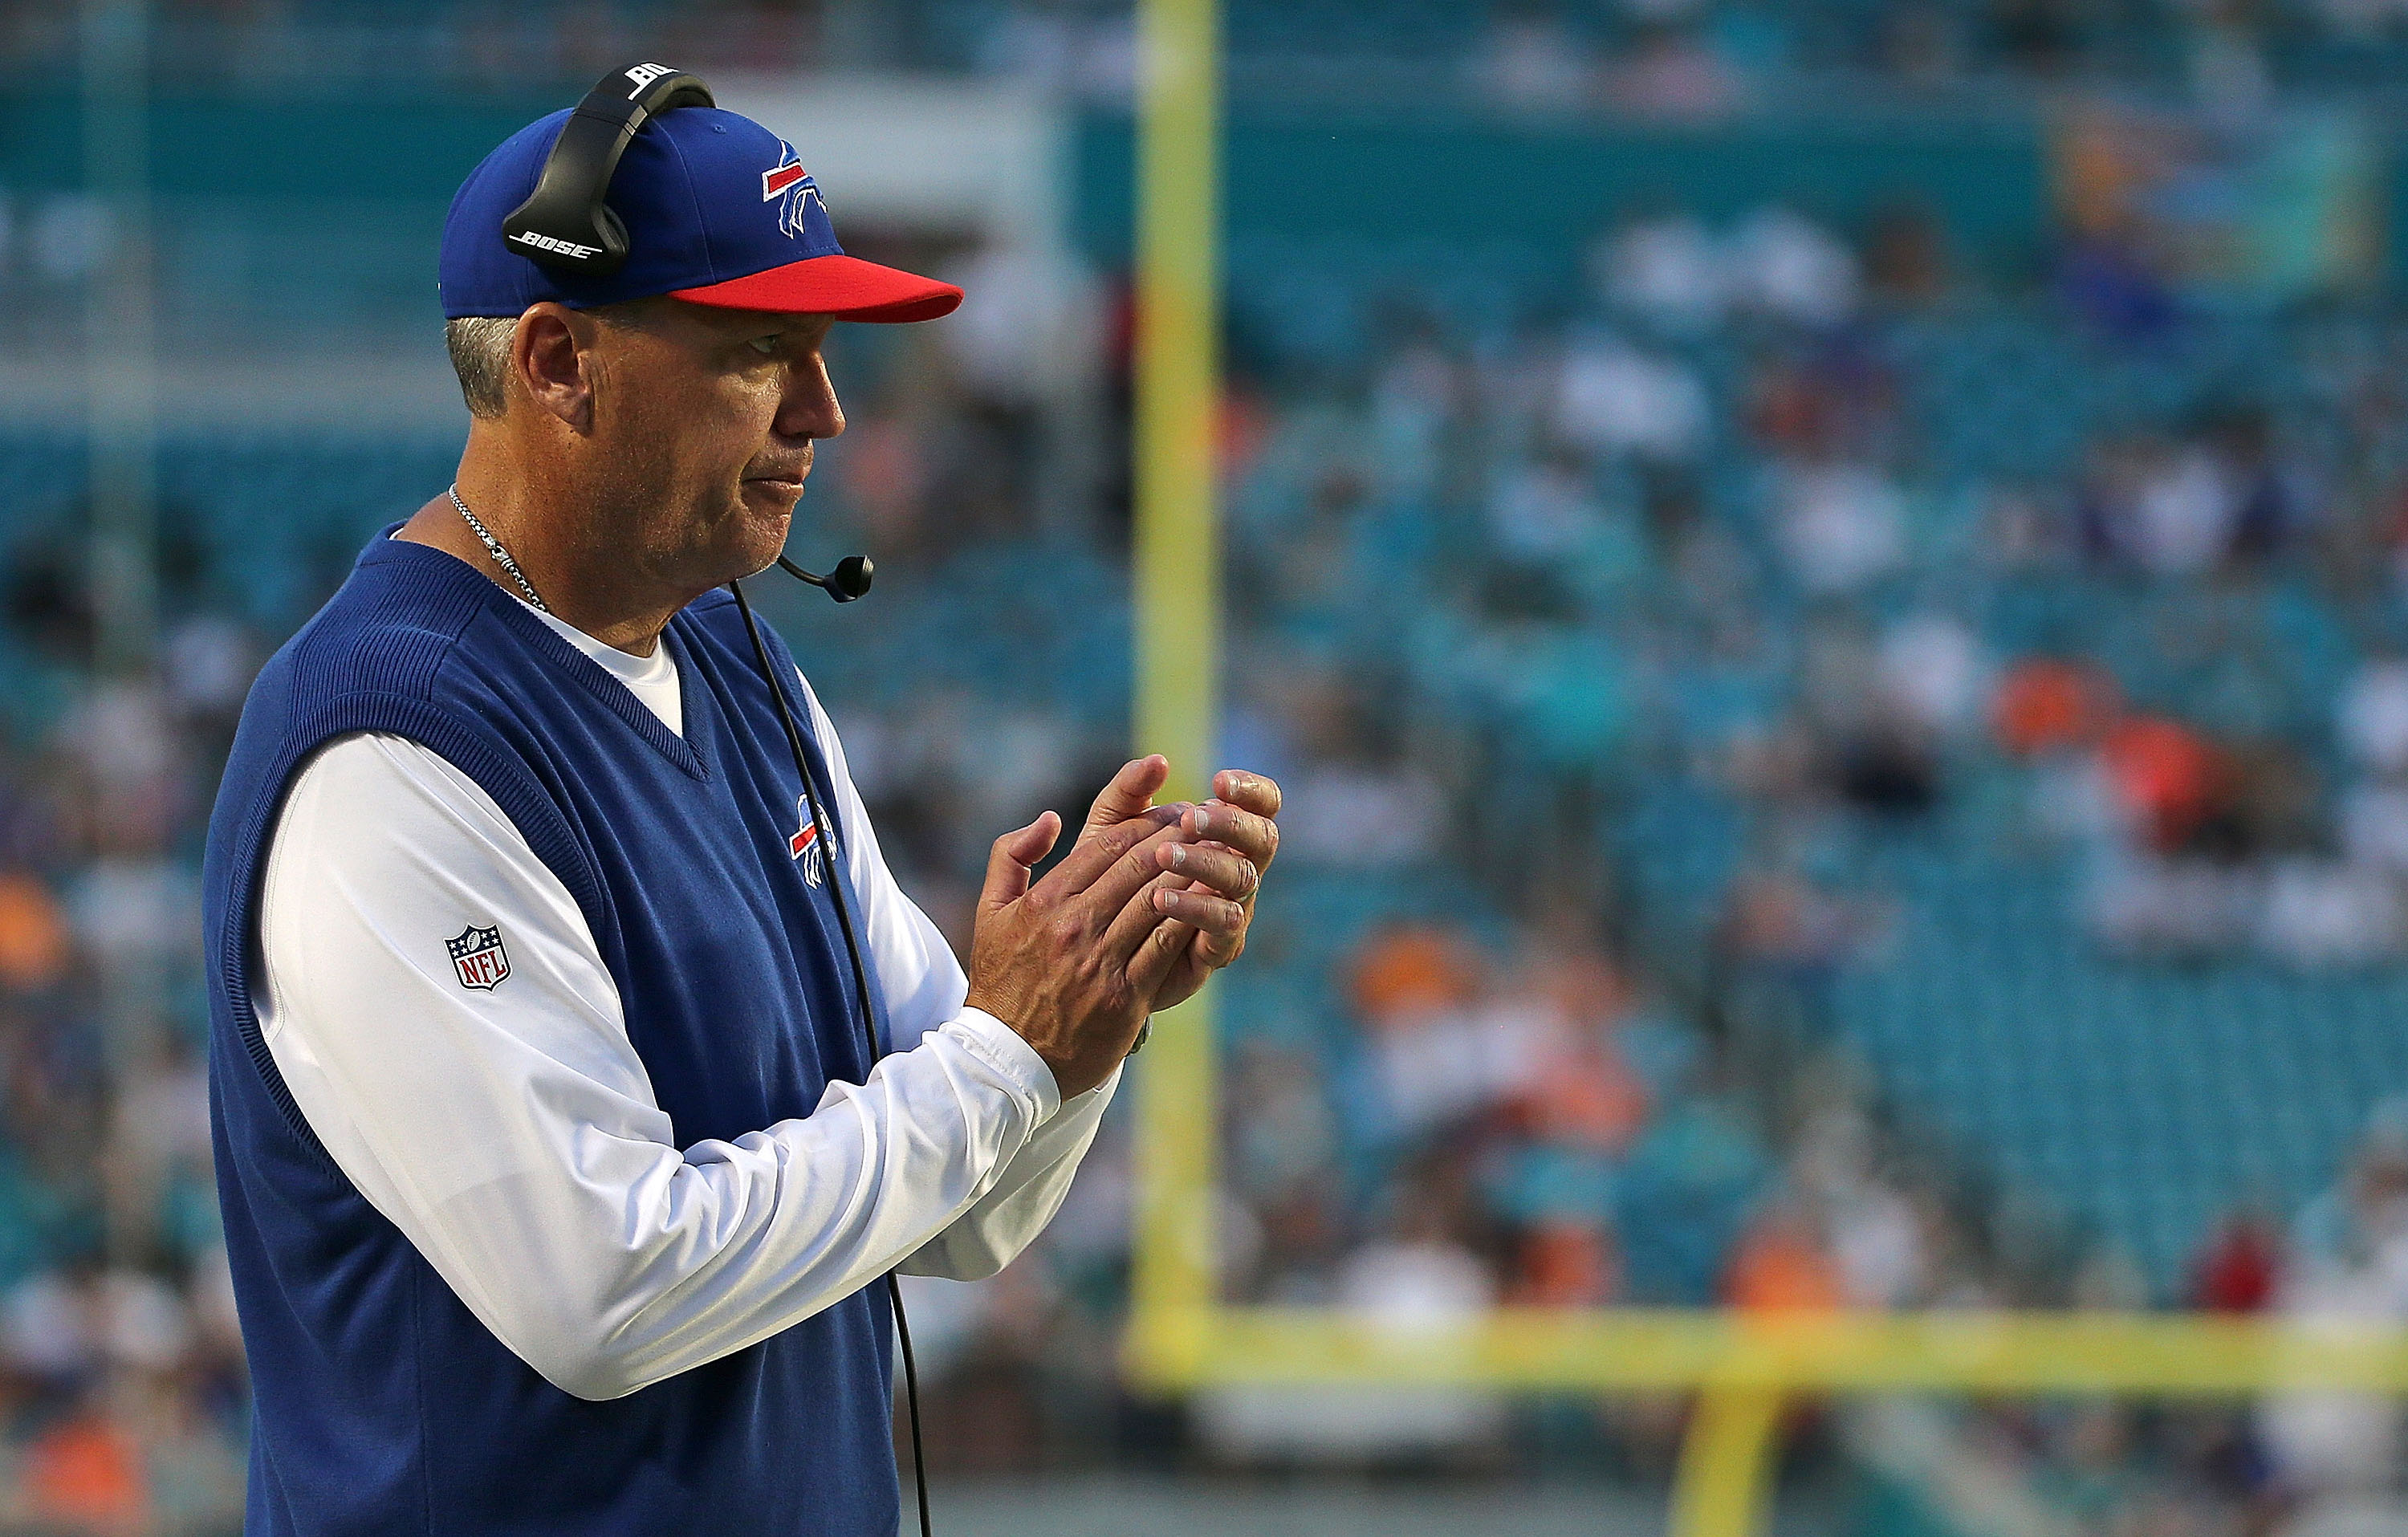 Rex Ryan has started 2-2 with the Buffalo Bills. (Getty)